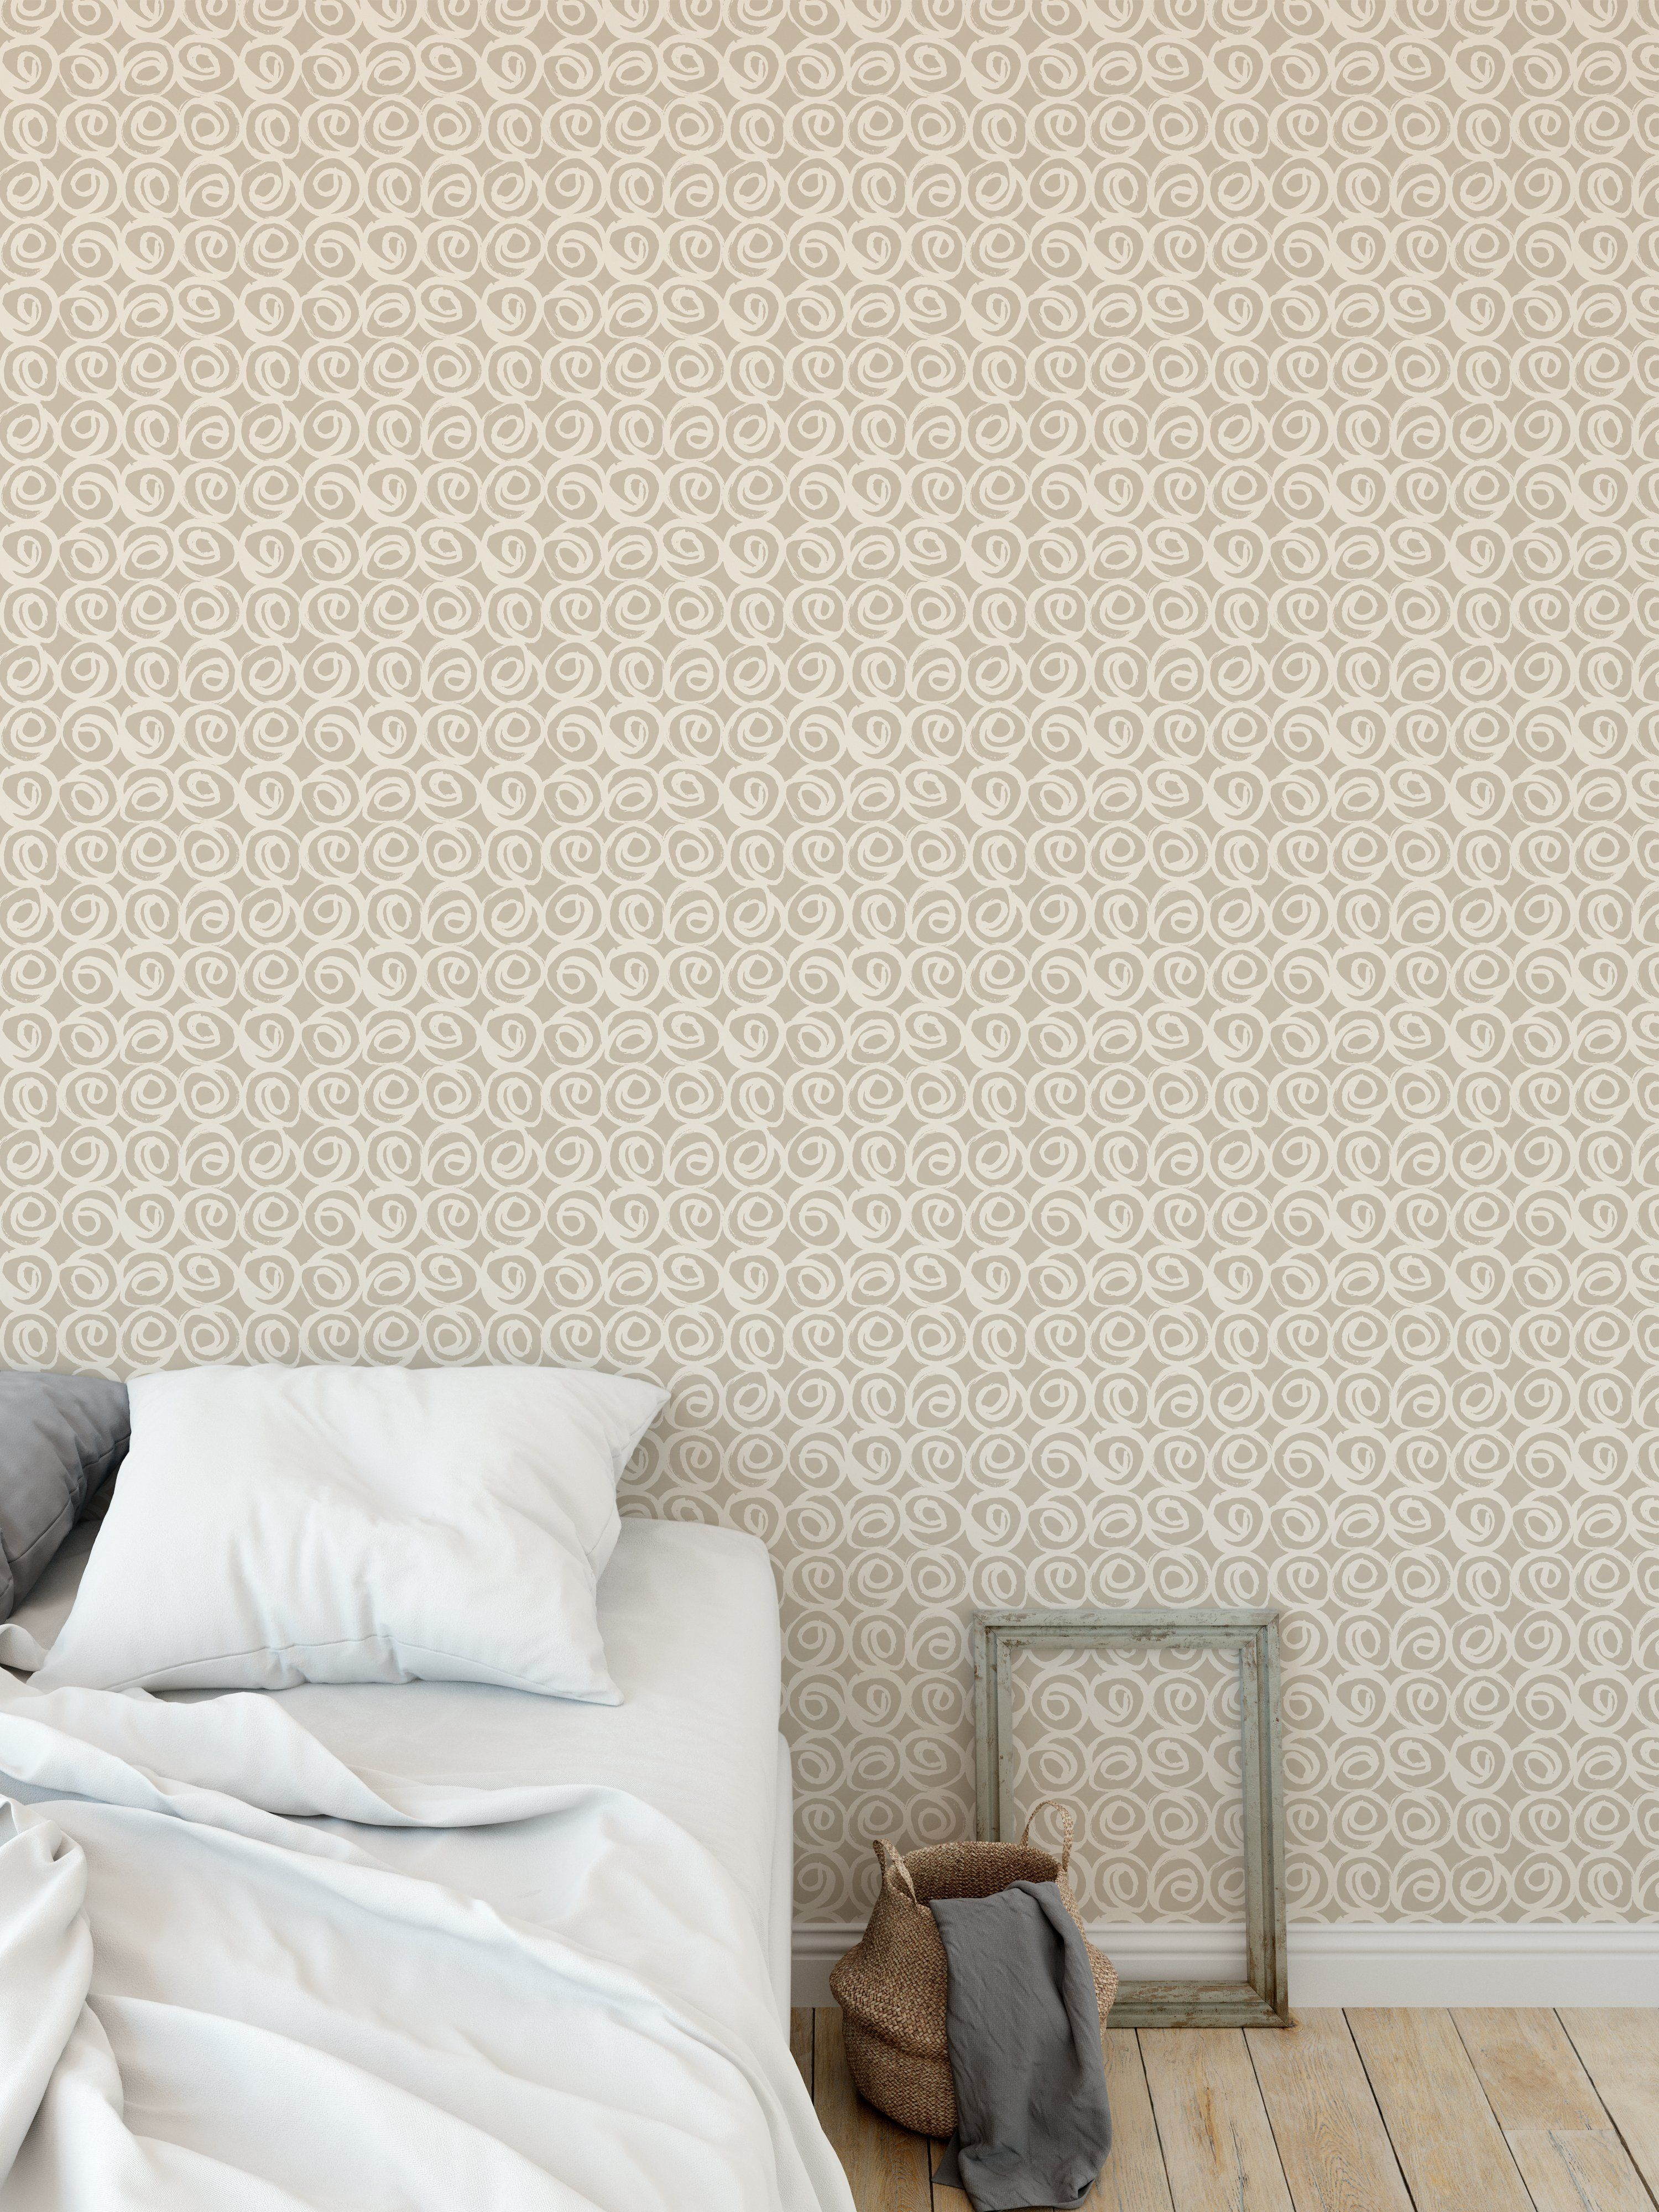 ROSES ABSTRACT BEIGE Peel and Stick Wallpaper By Kavka Designs - 2ft x 16ft